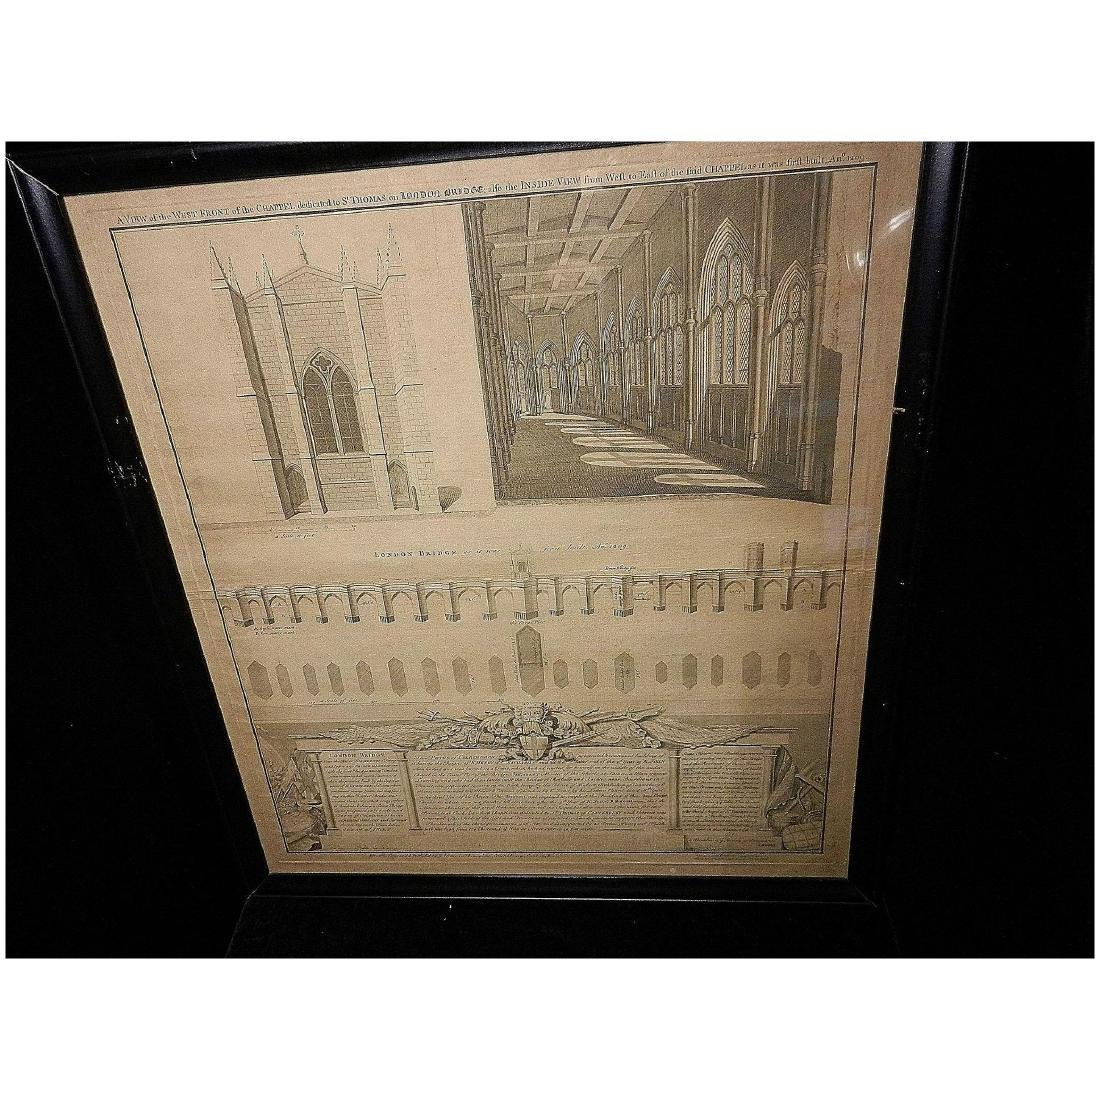 Antique Copper Plate Engraving of the London Bridge by